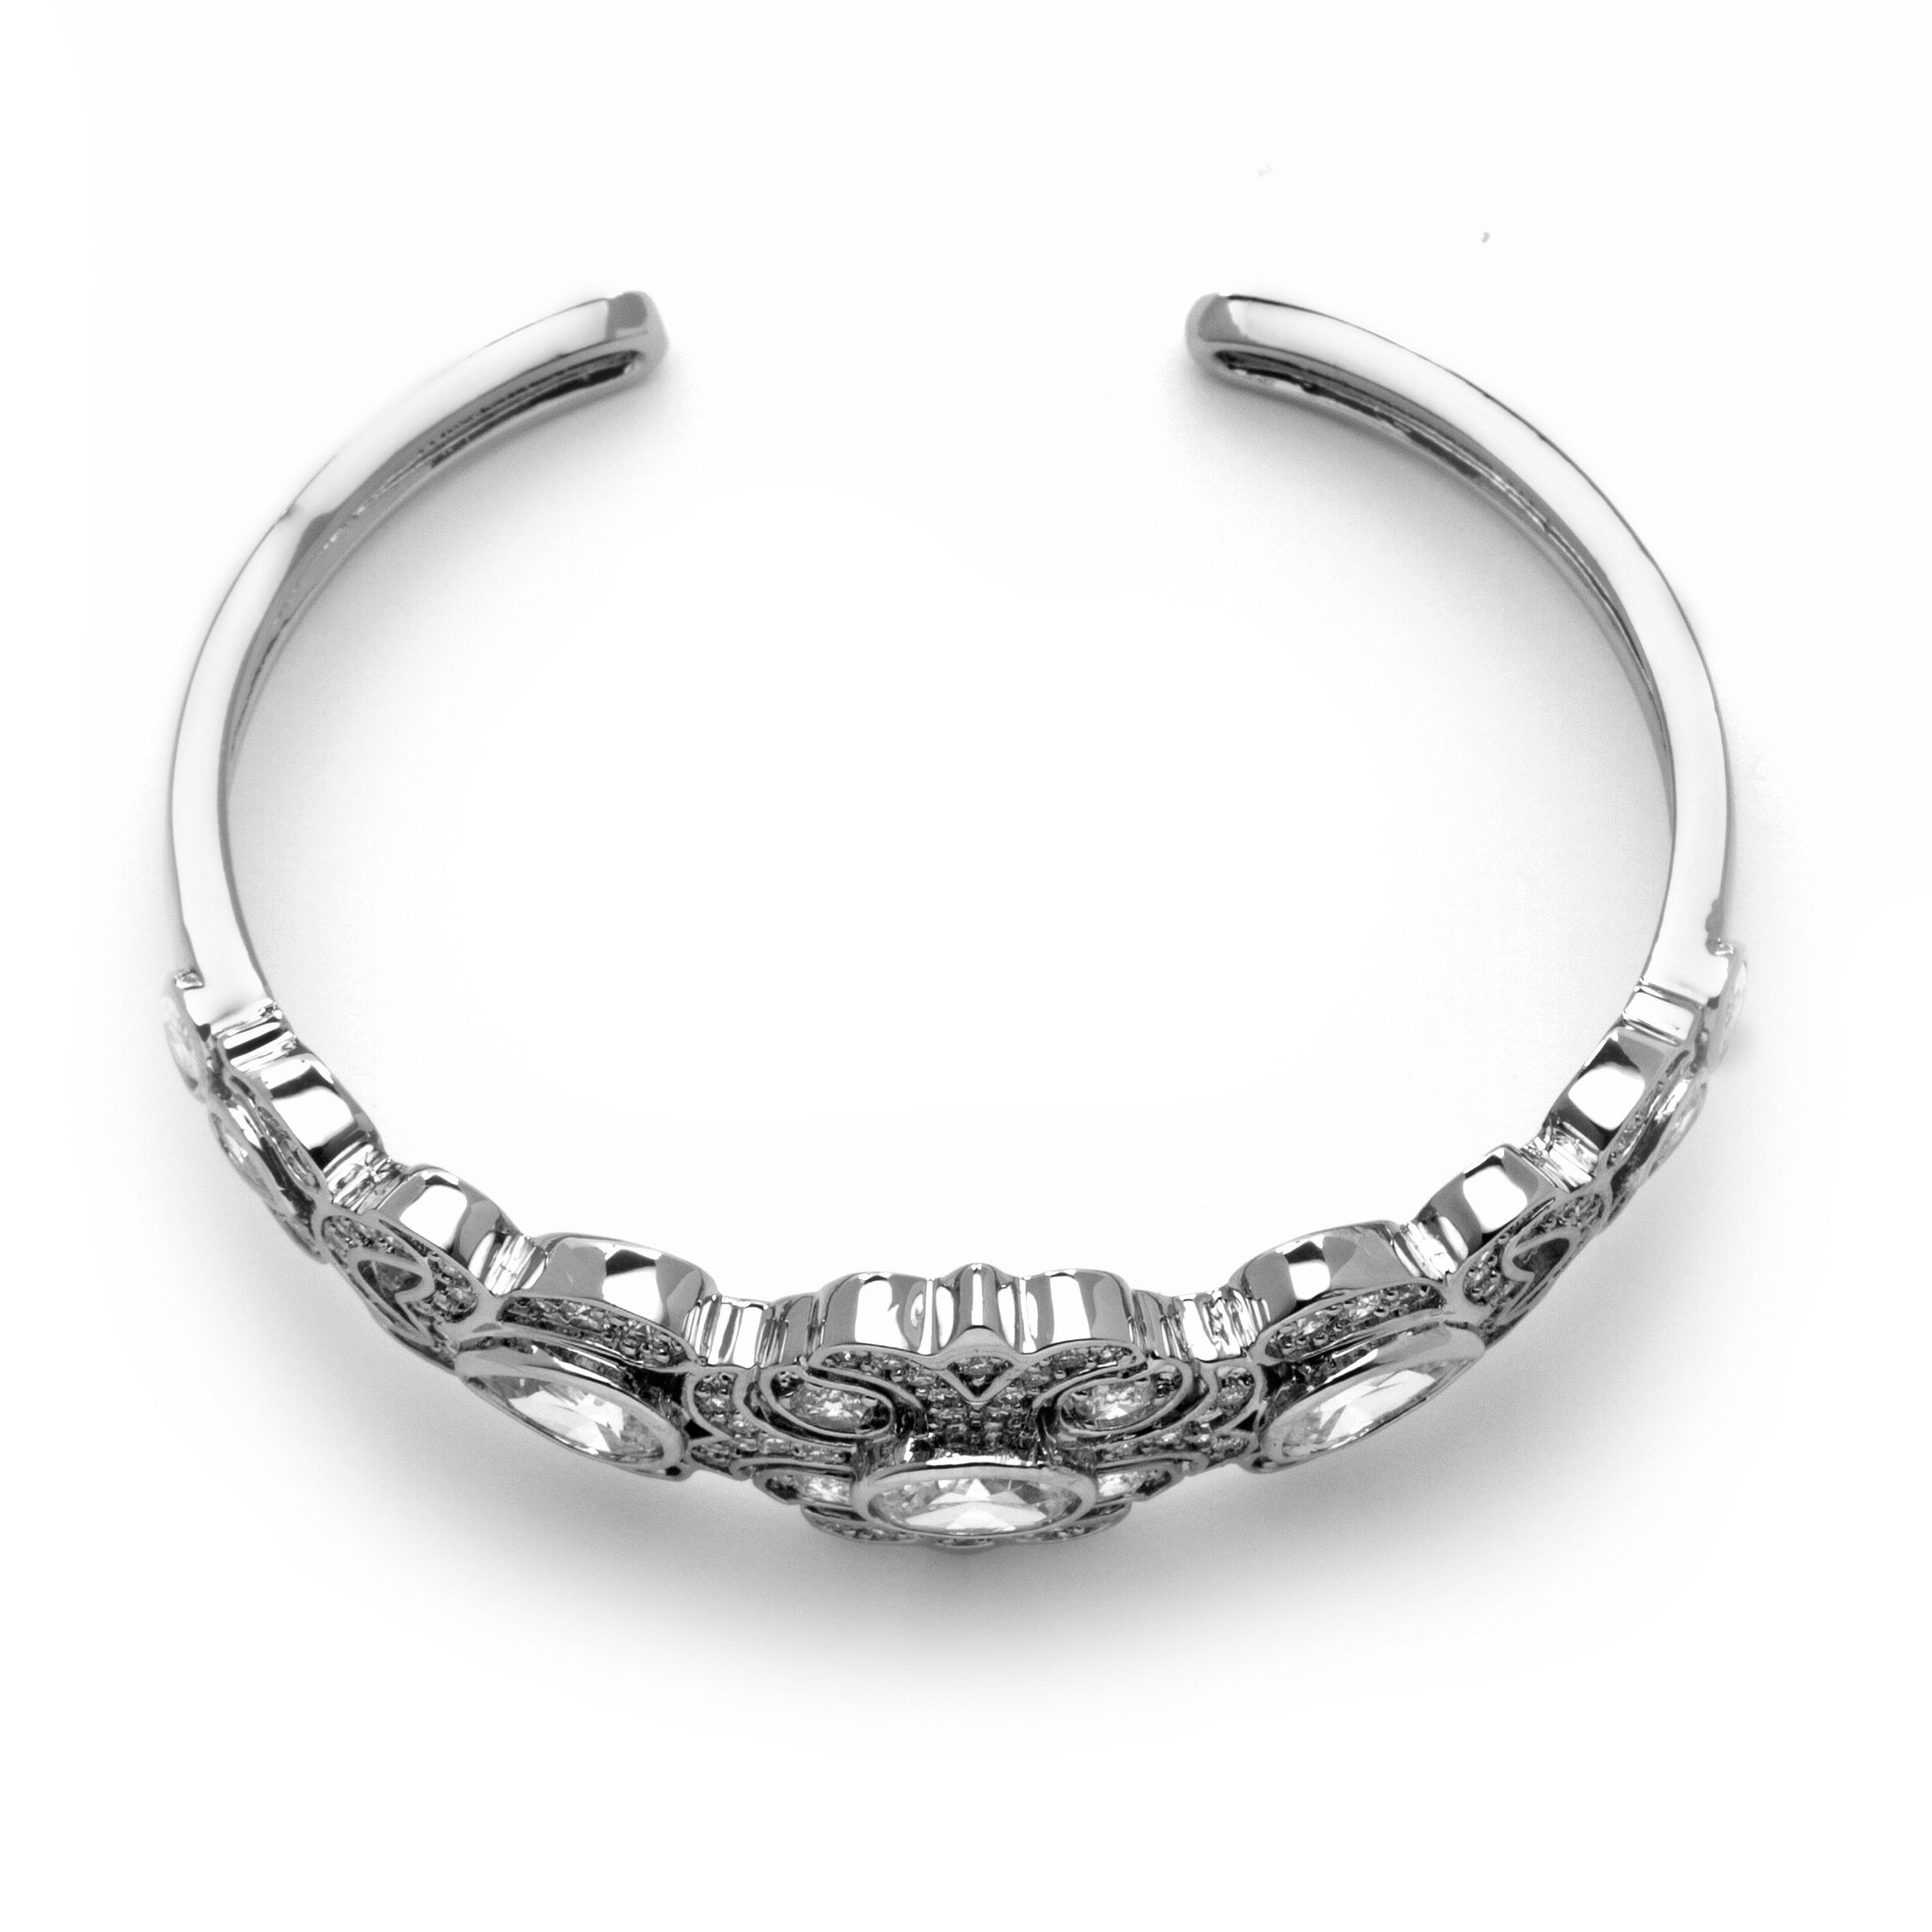 Shop PalmBeach 9.39 TCW Vintage-Style Cubic Zirconia Bangle Bracelet Platinum-Plated Glam CZ - Free Shipping Today - Overstock.com - 8625339